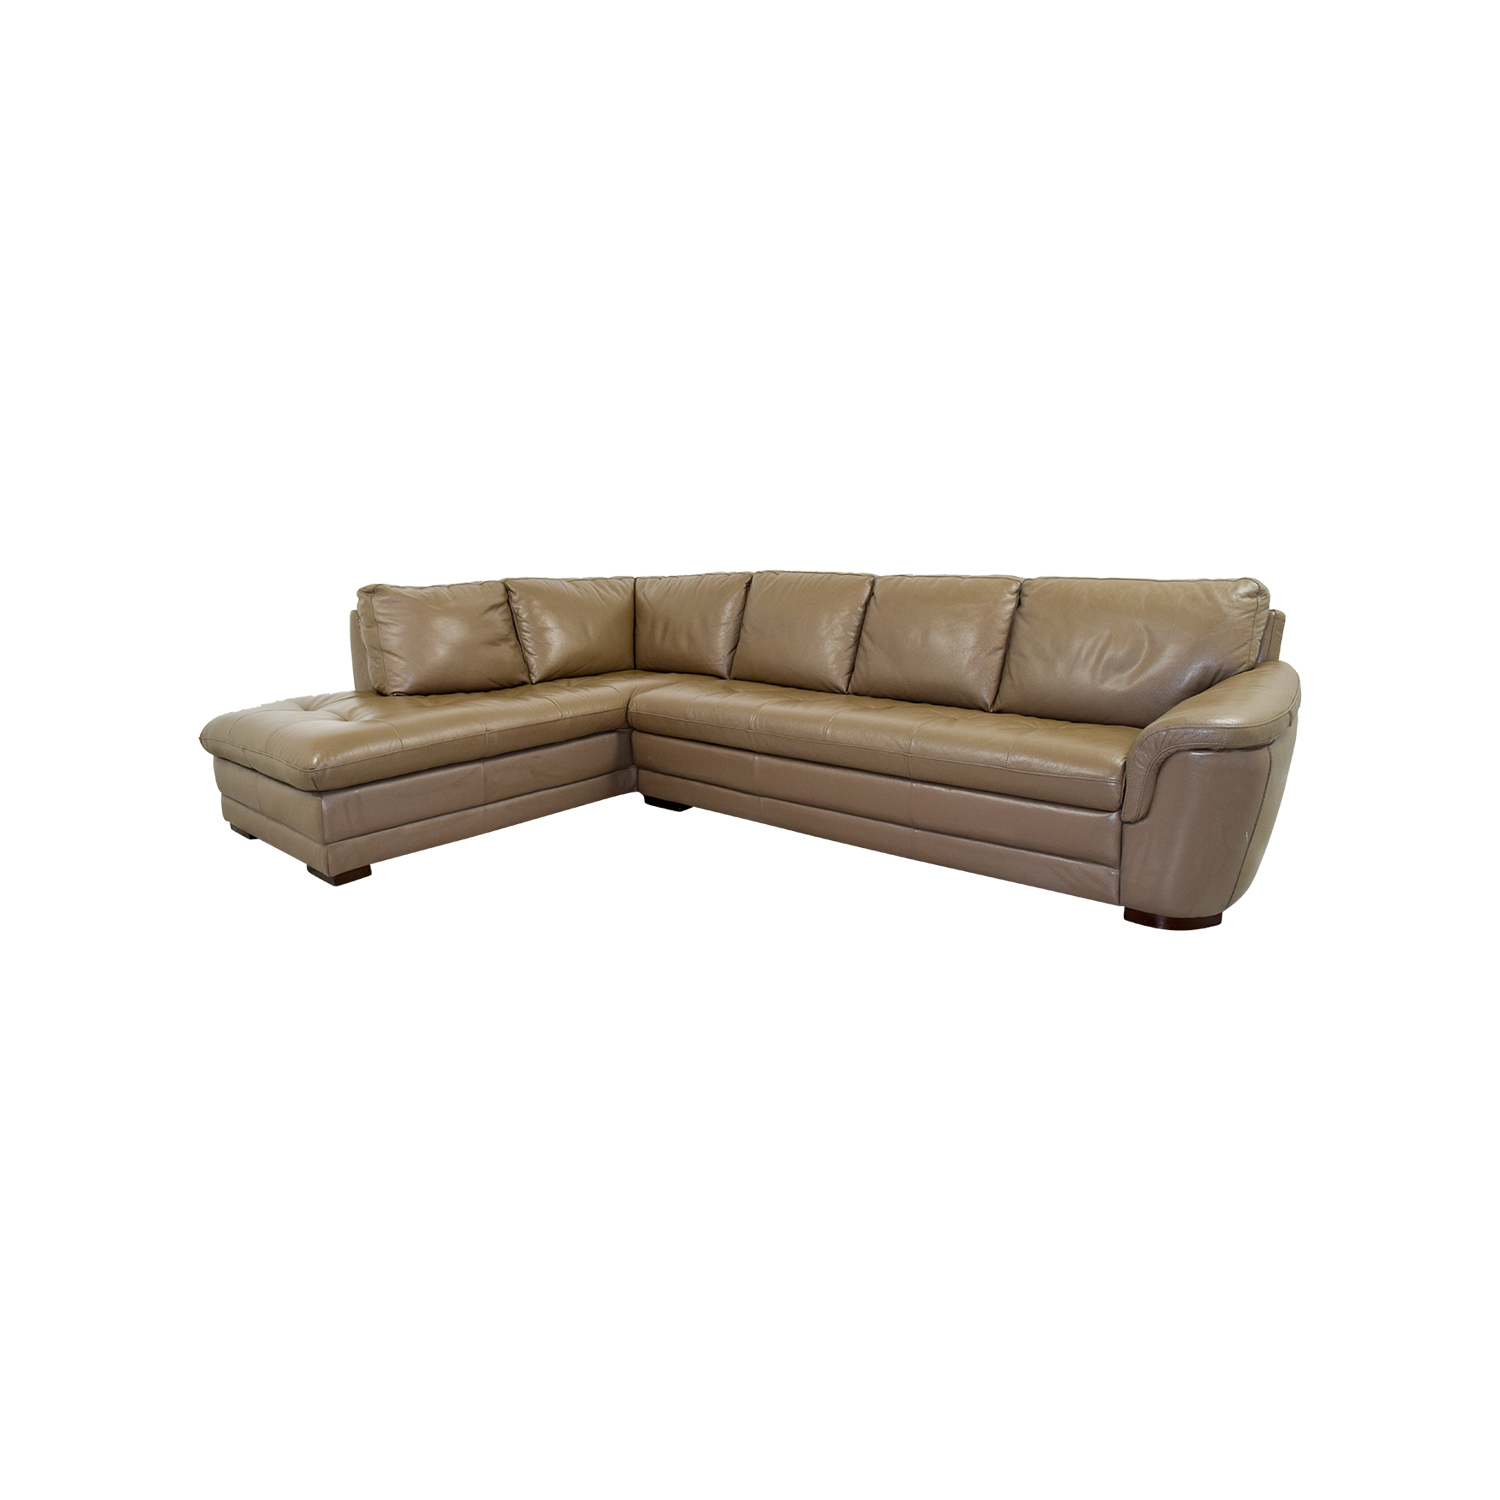 Raymour & Flanigan Raymour & Flanigan Garrison Tufted Leather Sectional coupon